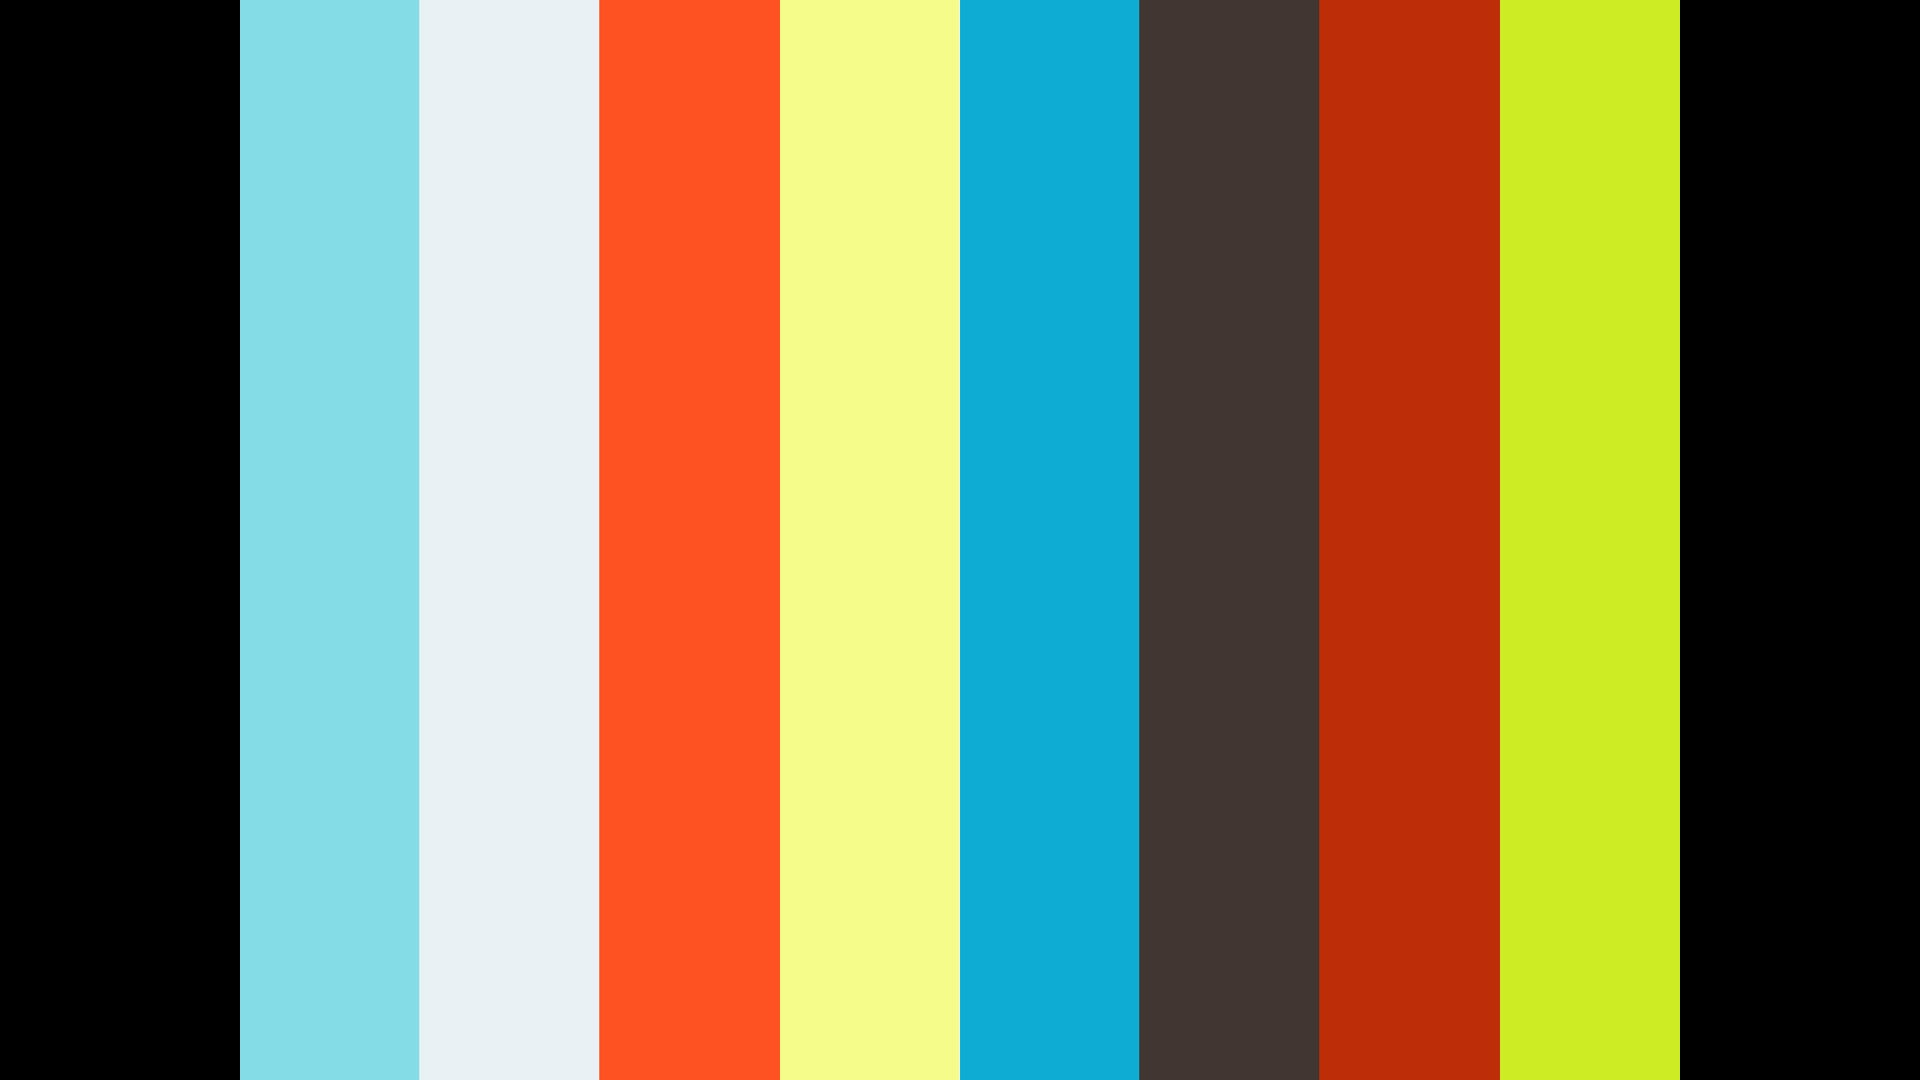 Rainy Day Studios